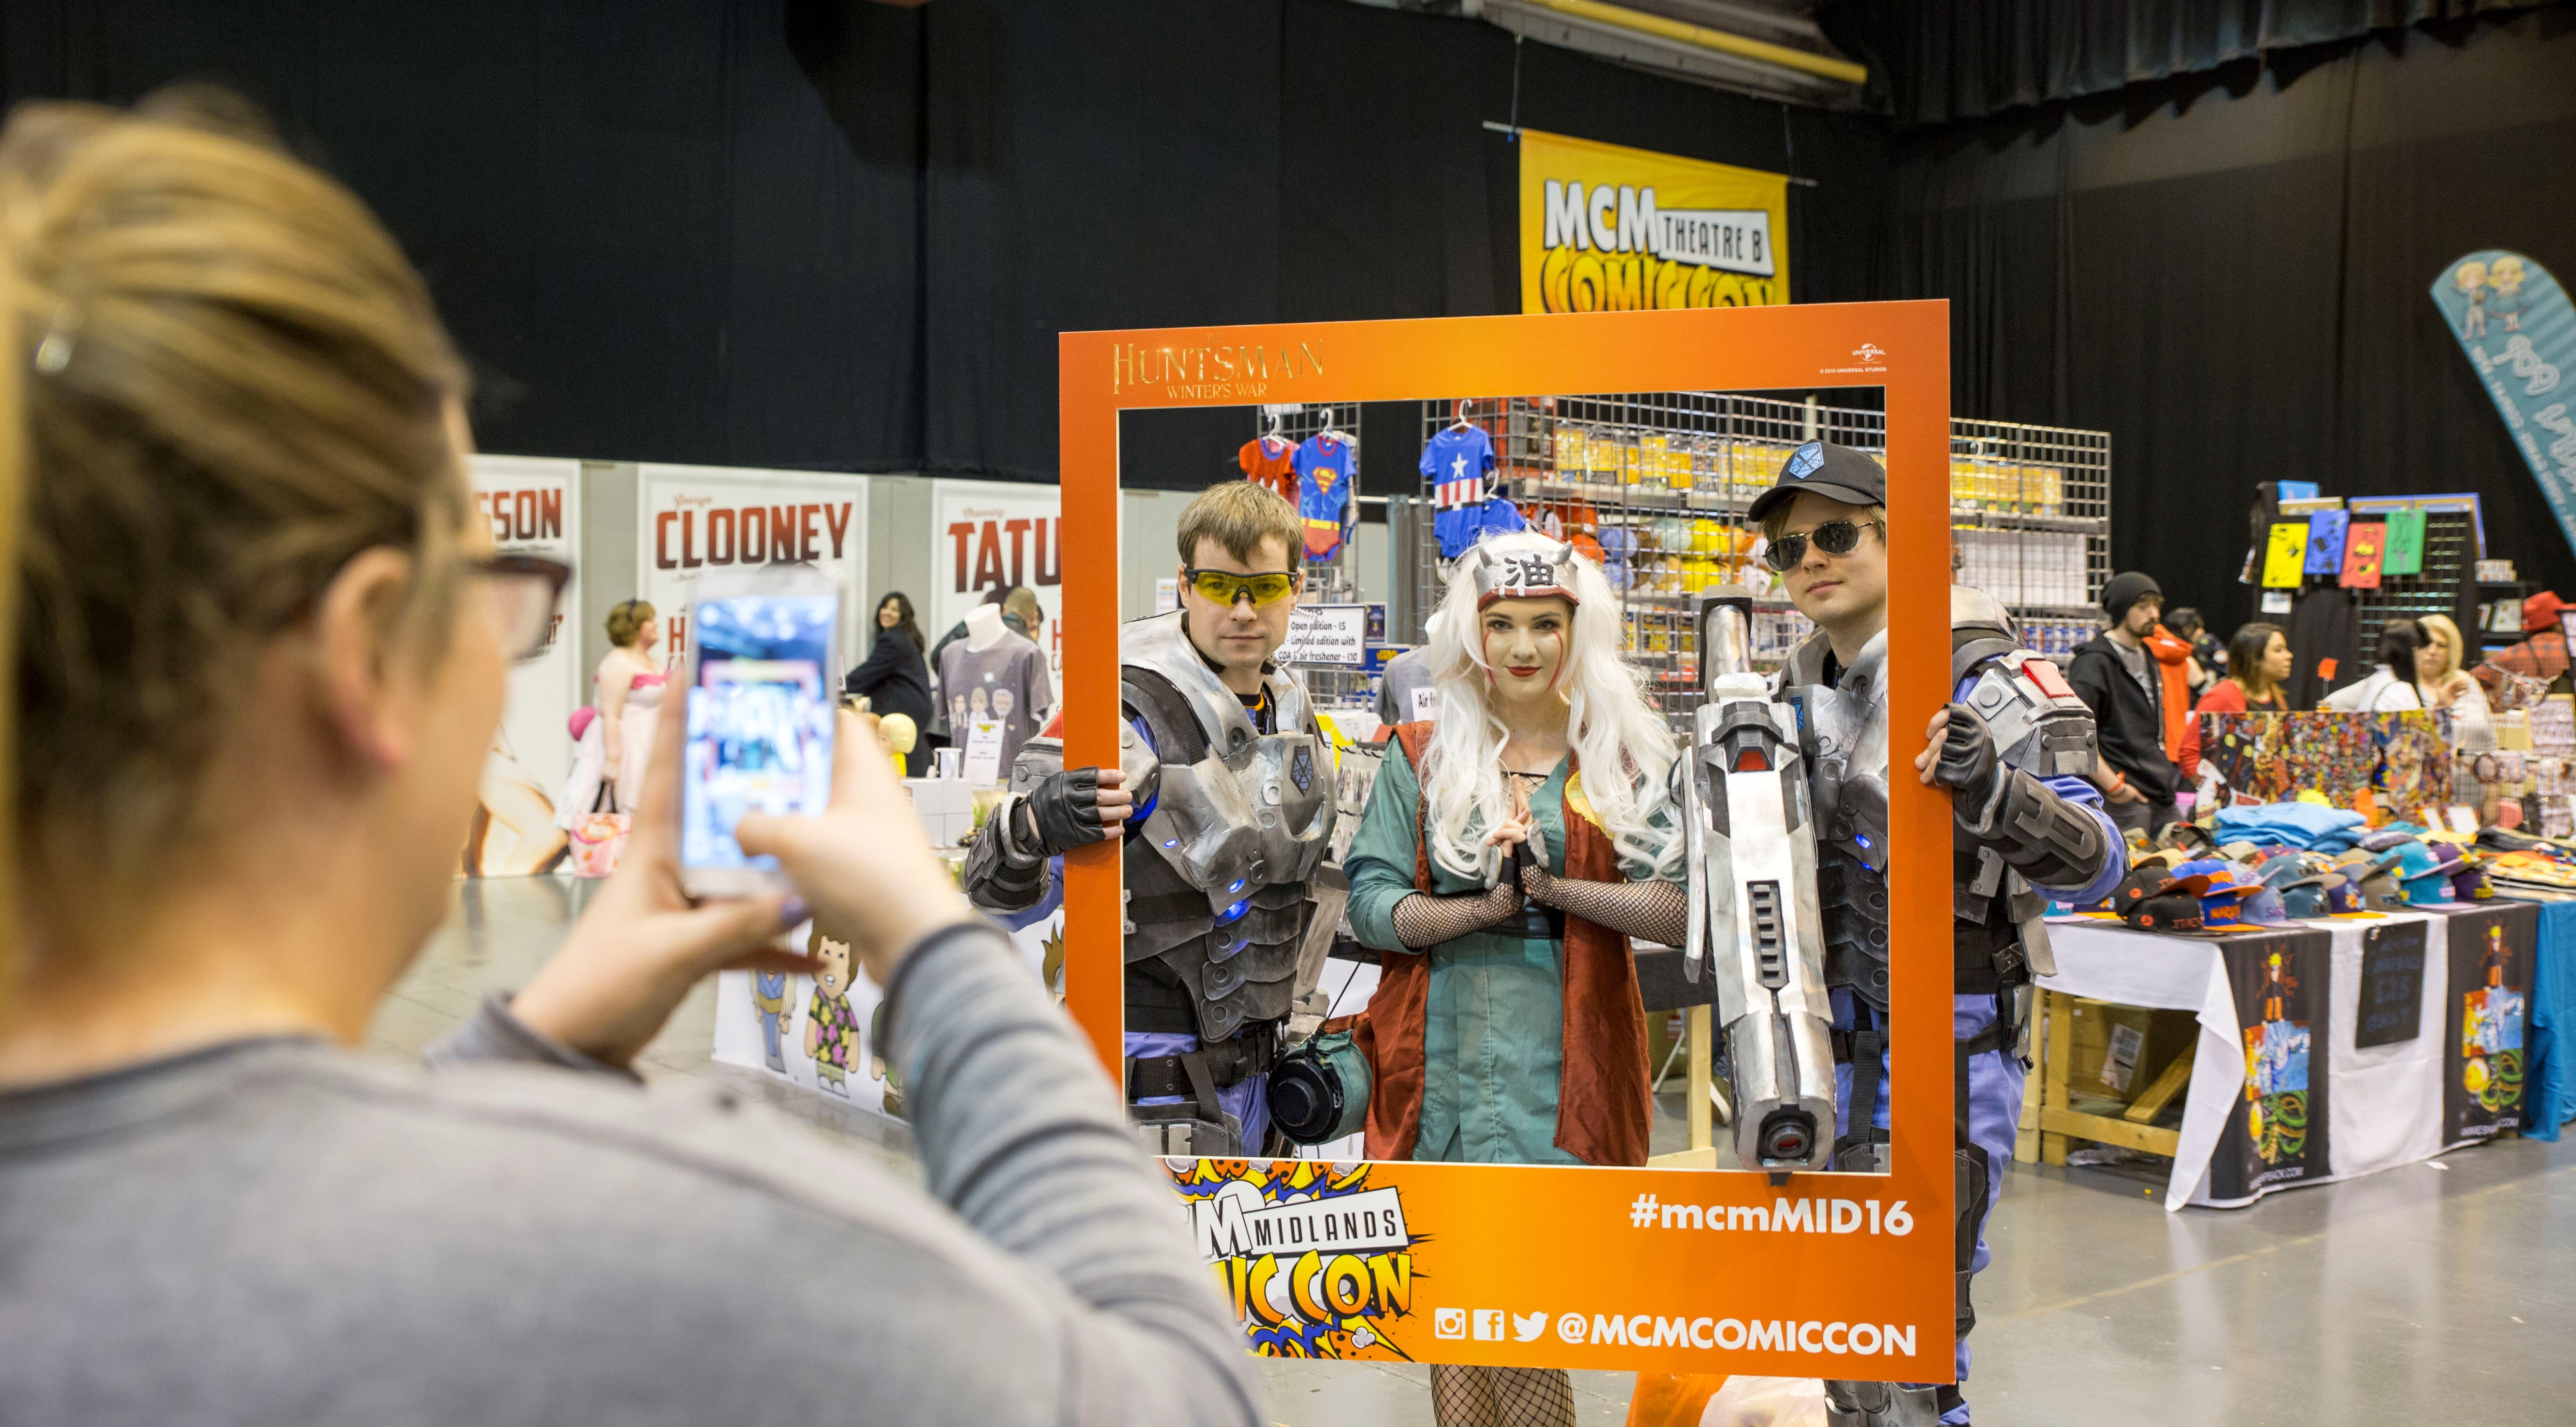 Tickets to MCM Comic Con Midlands